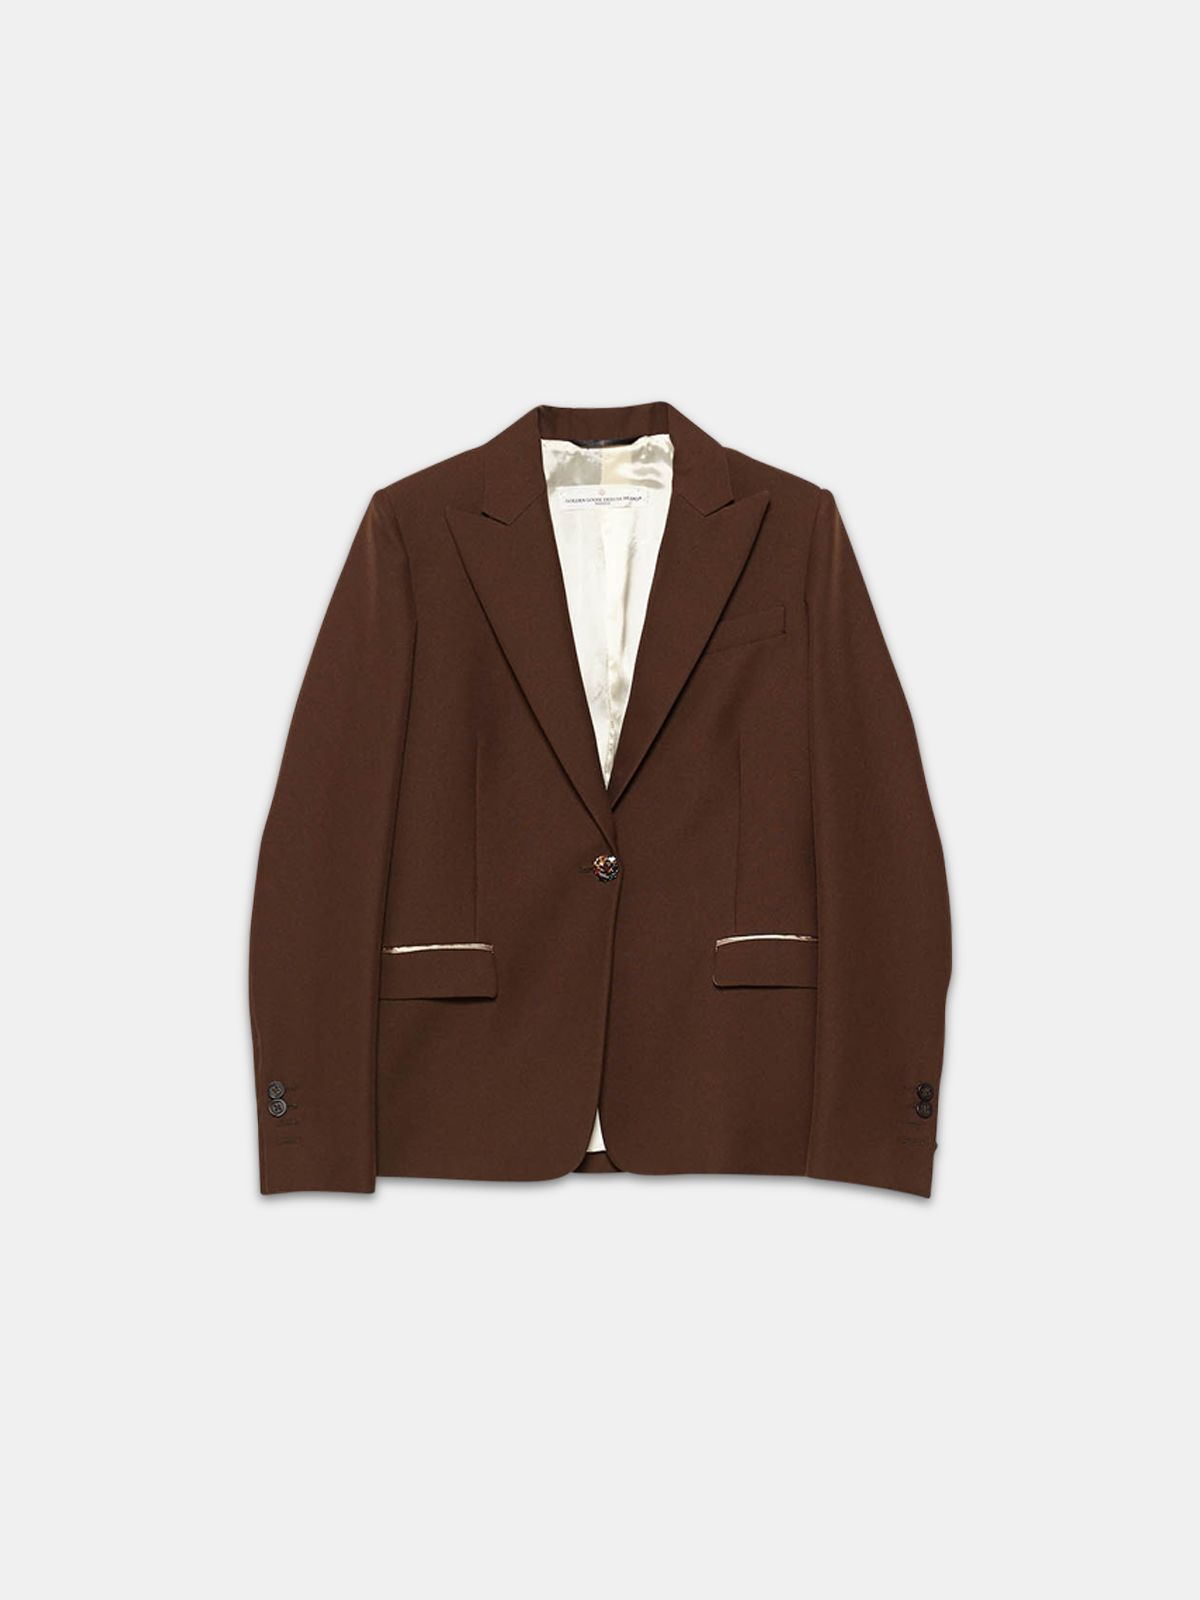 Golden Goose - Venice single-breasted jacket with bejewelled button in